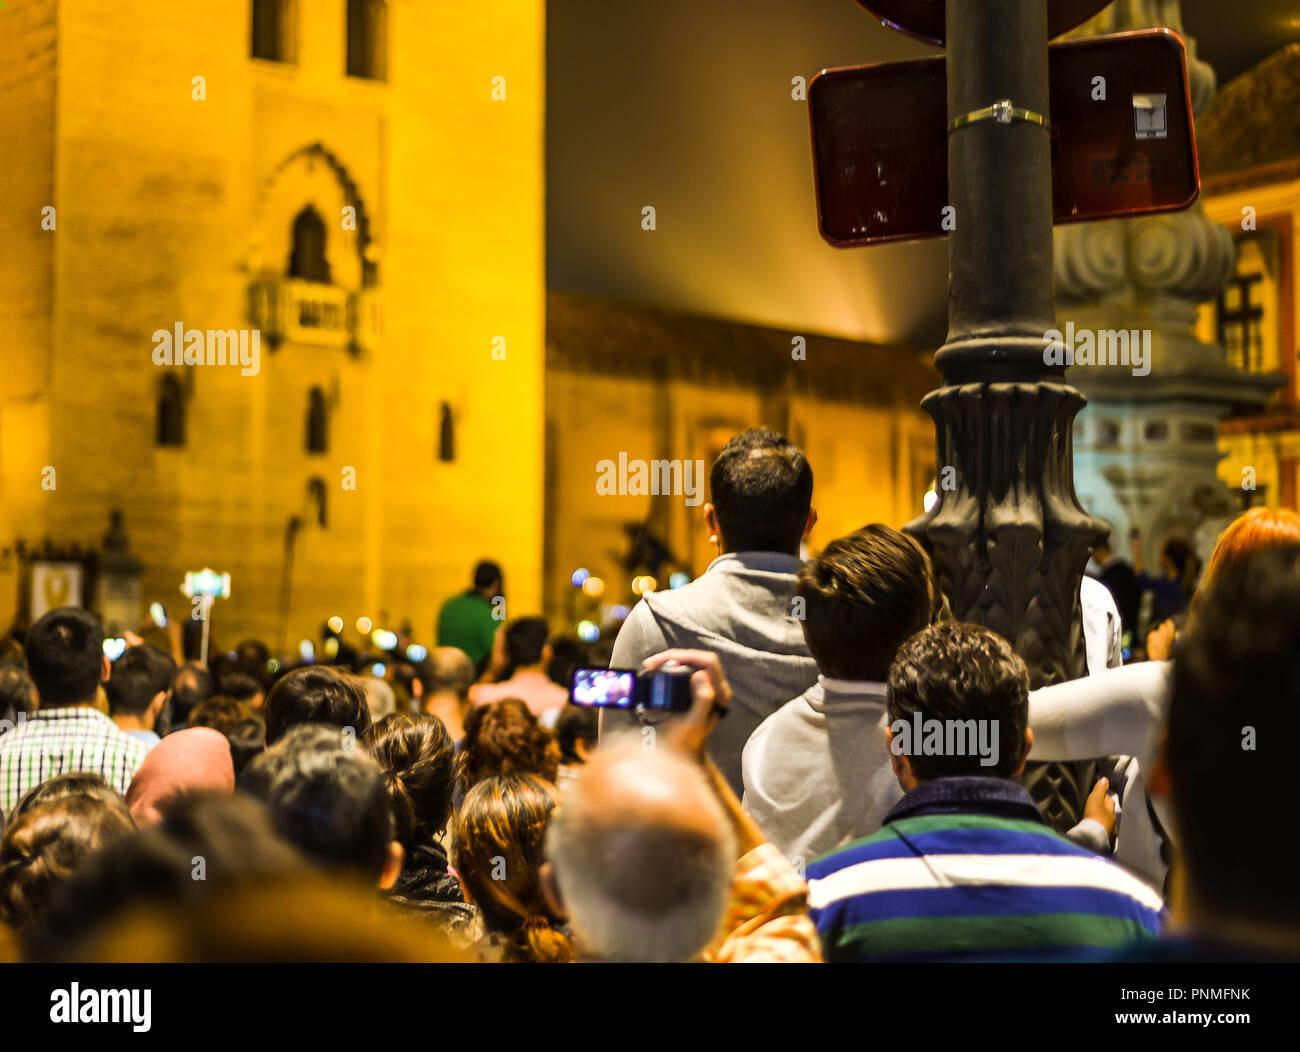 Sevilla/Spain - 10/13/16 - A religious event at night - Stock Image